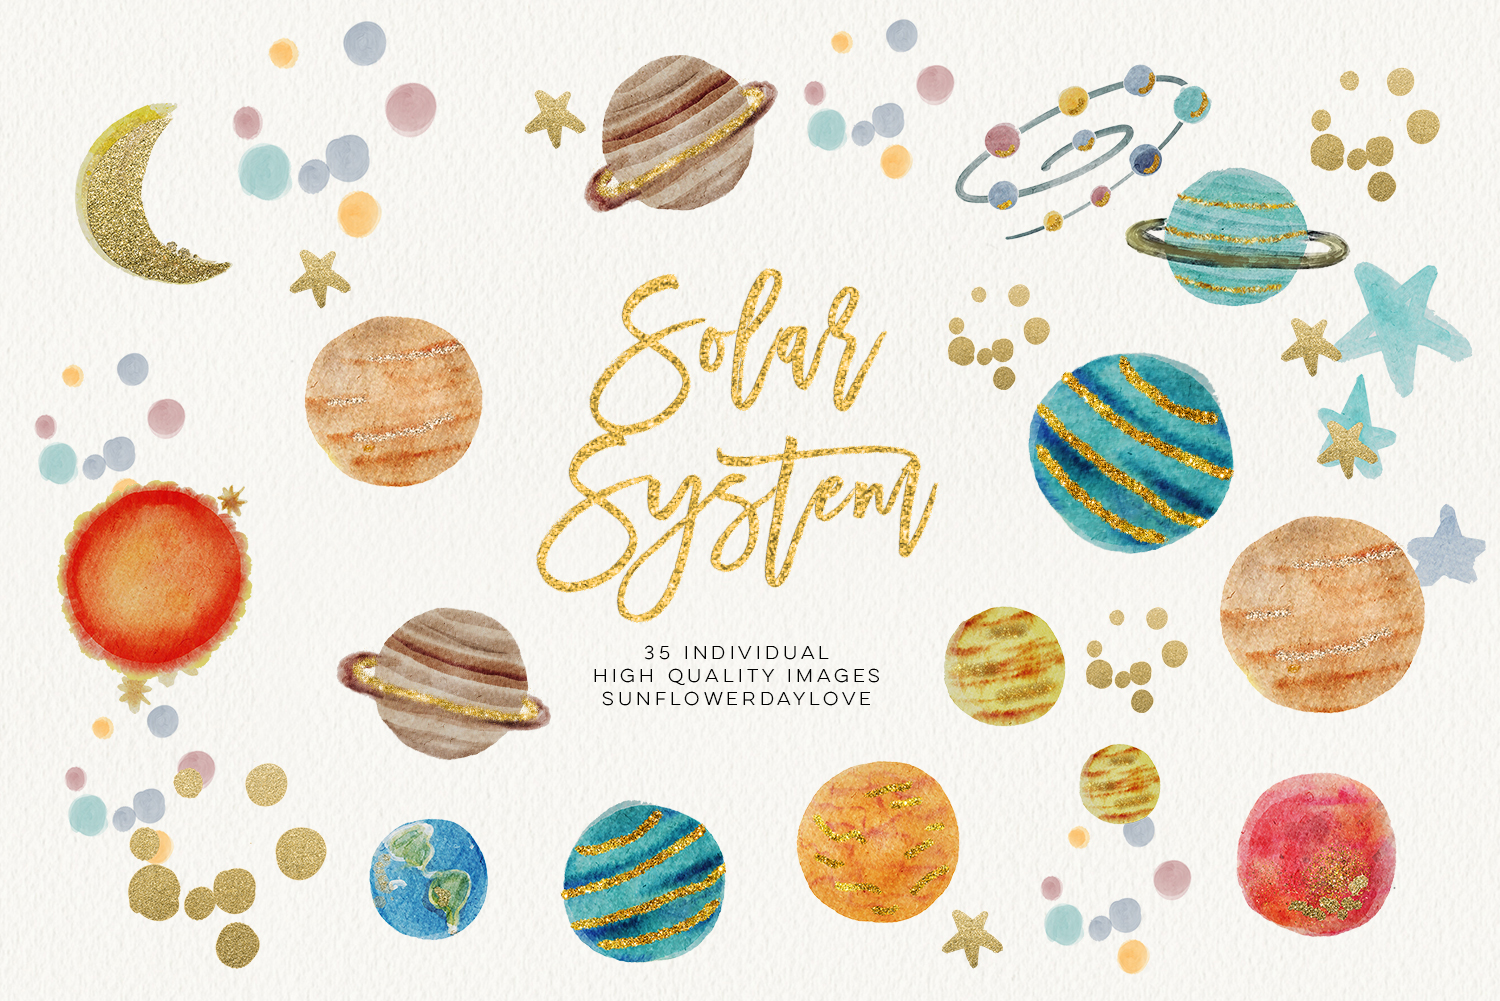 Outerspace clipart graphic free download watercolor SOLAR SYSTEM clipart, Outer Space Clipart planets graphic space  clipart scrapbook planet clip art, digital image digital download - Vsual graphic free download